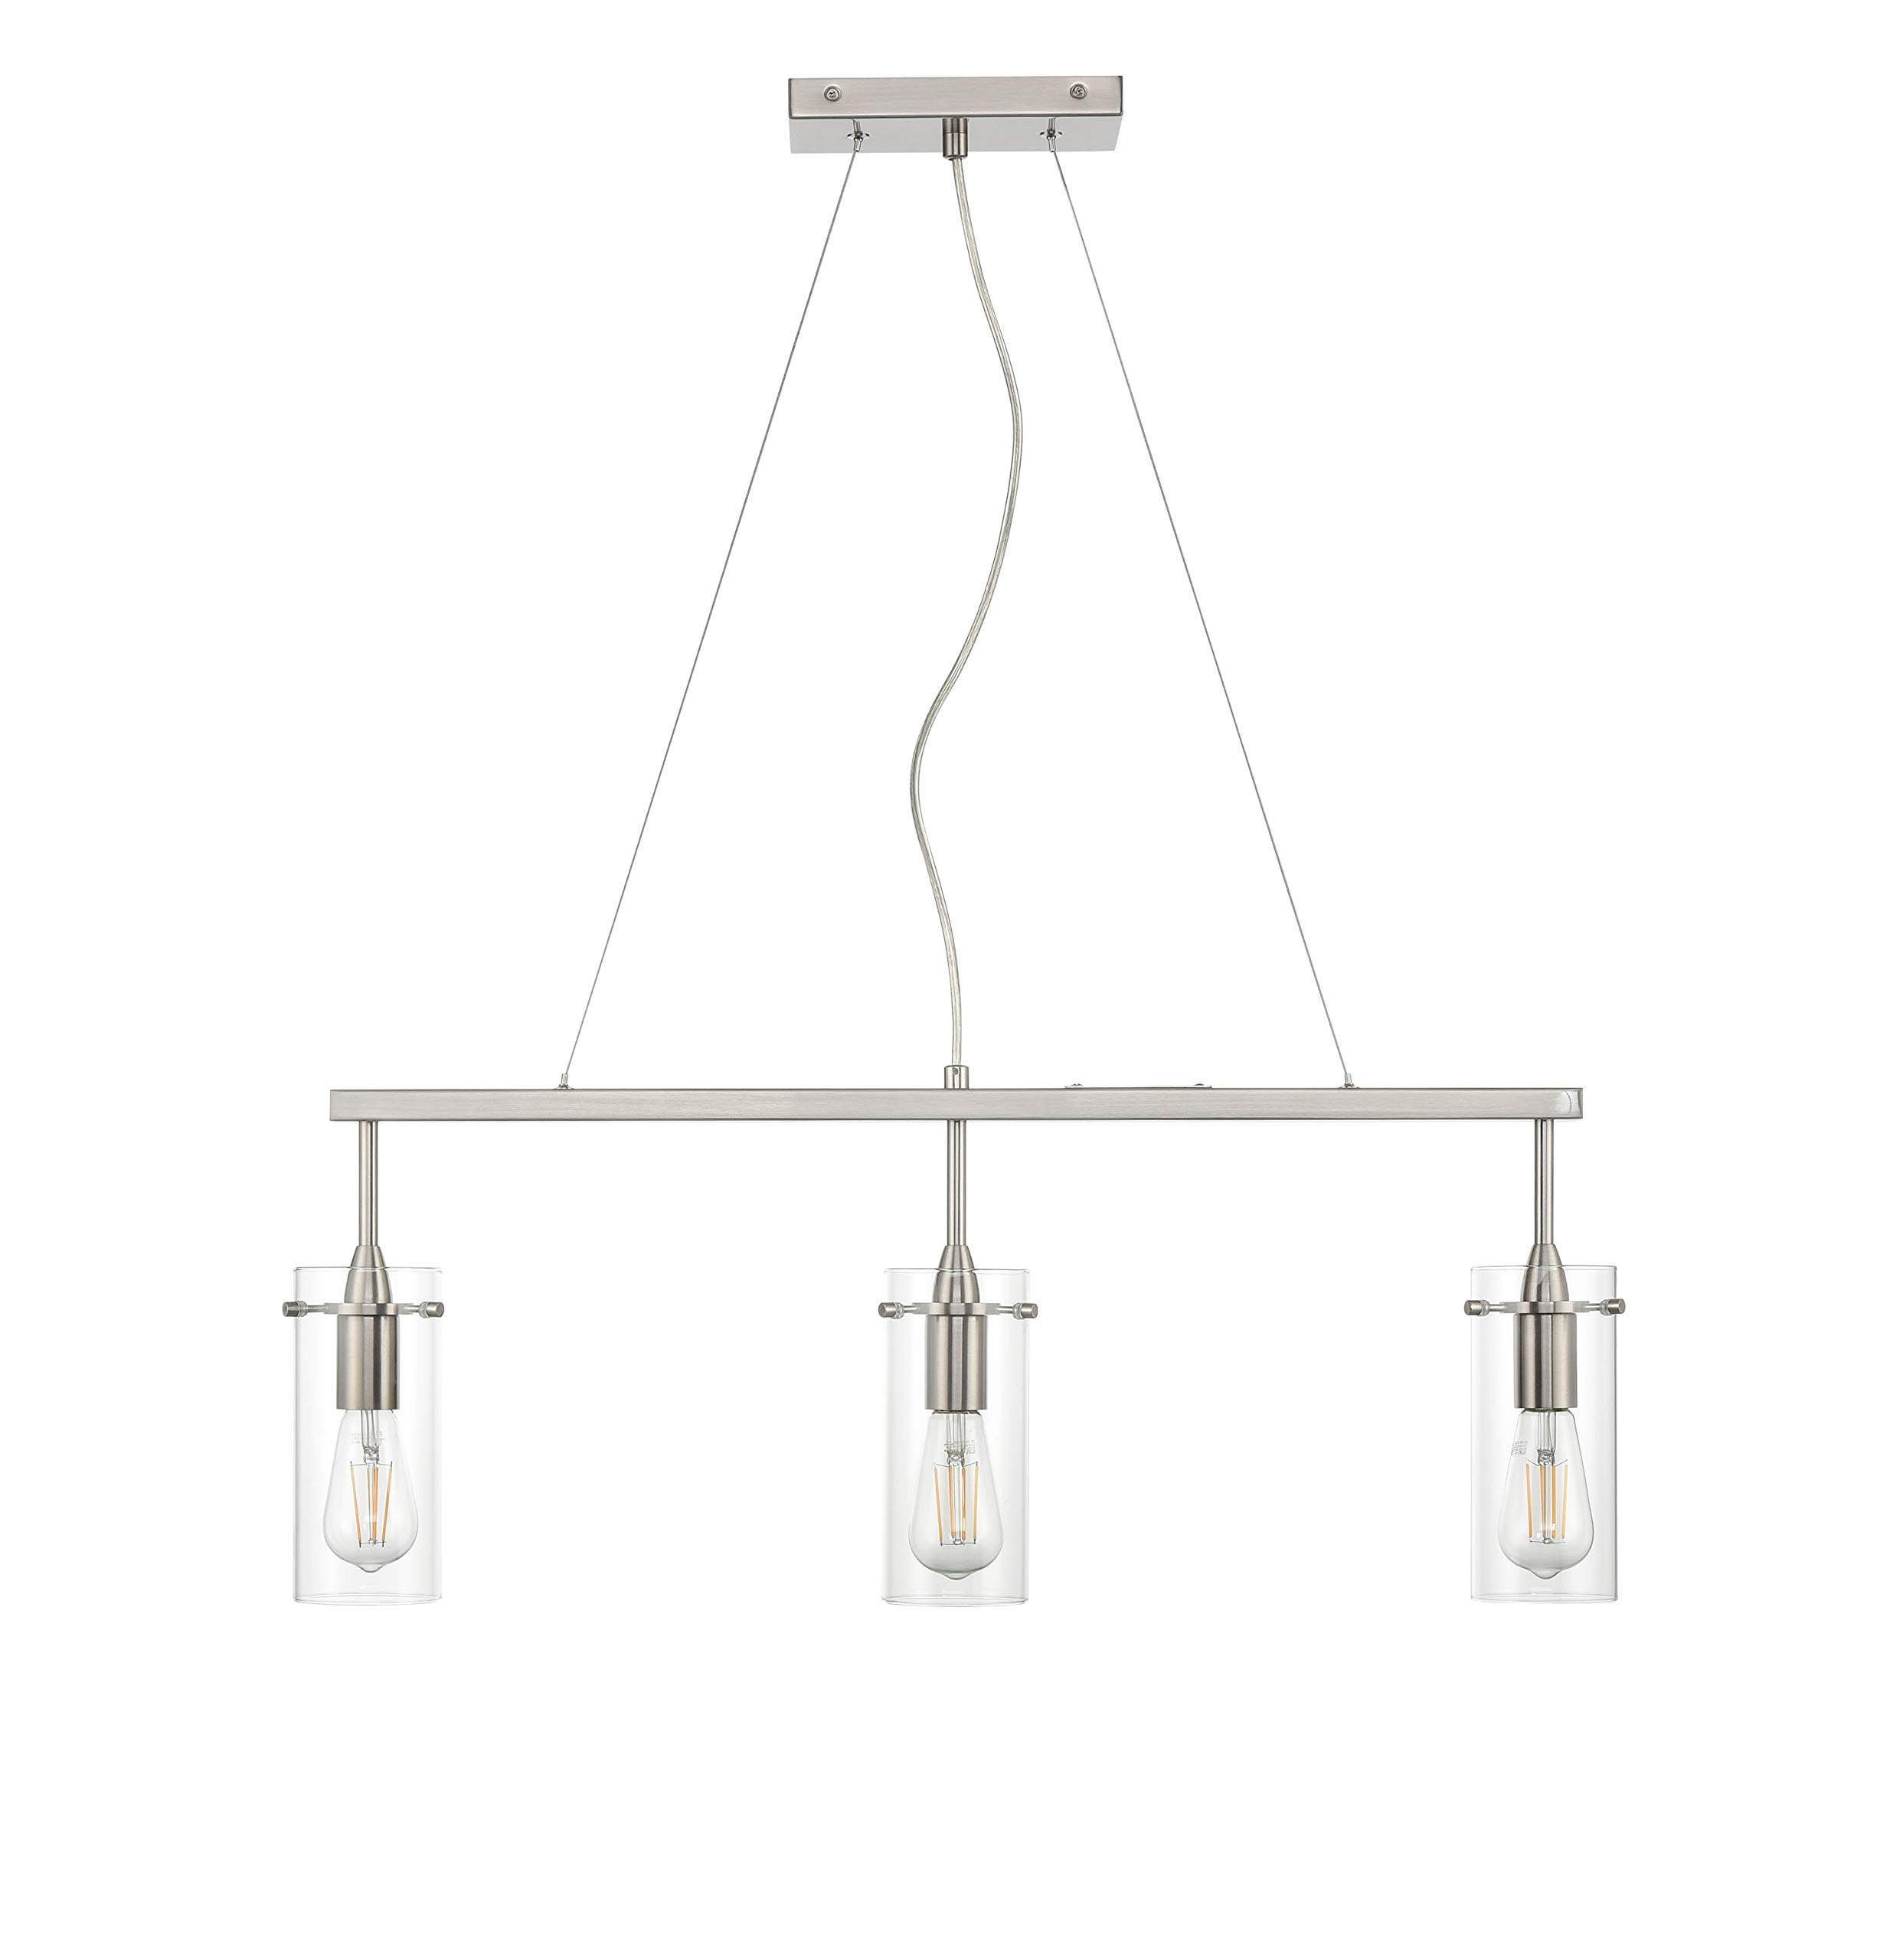 Effimero Pendant Lighting for Kitchen Island | Brushed Nickel Small 3 Pendant Light LL-P331-BN